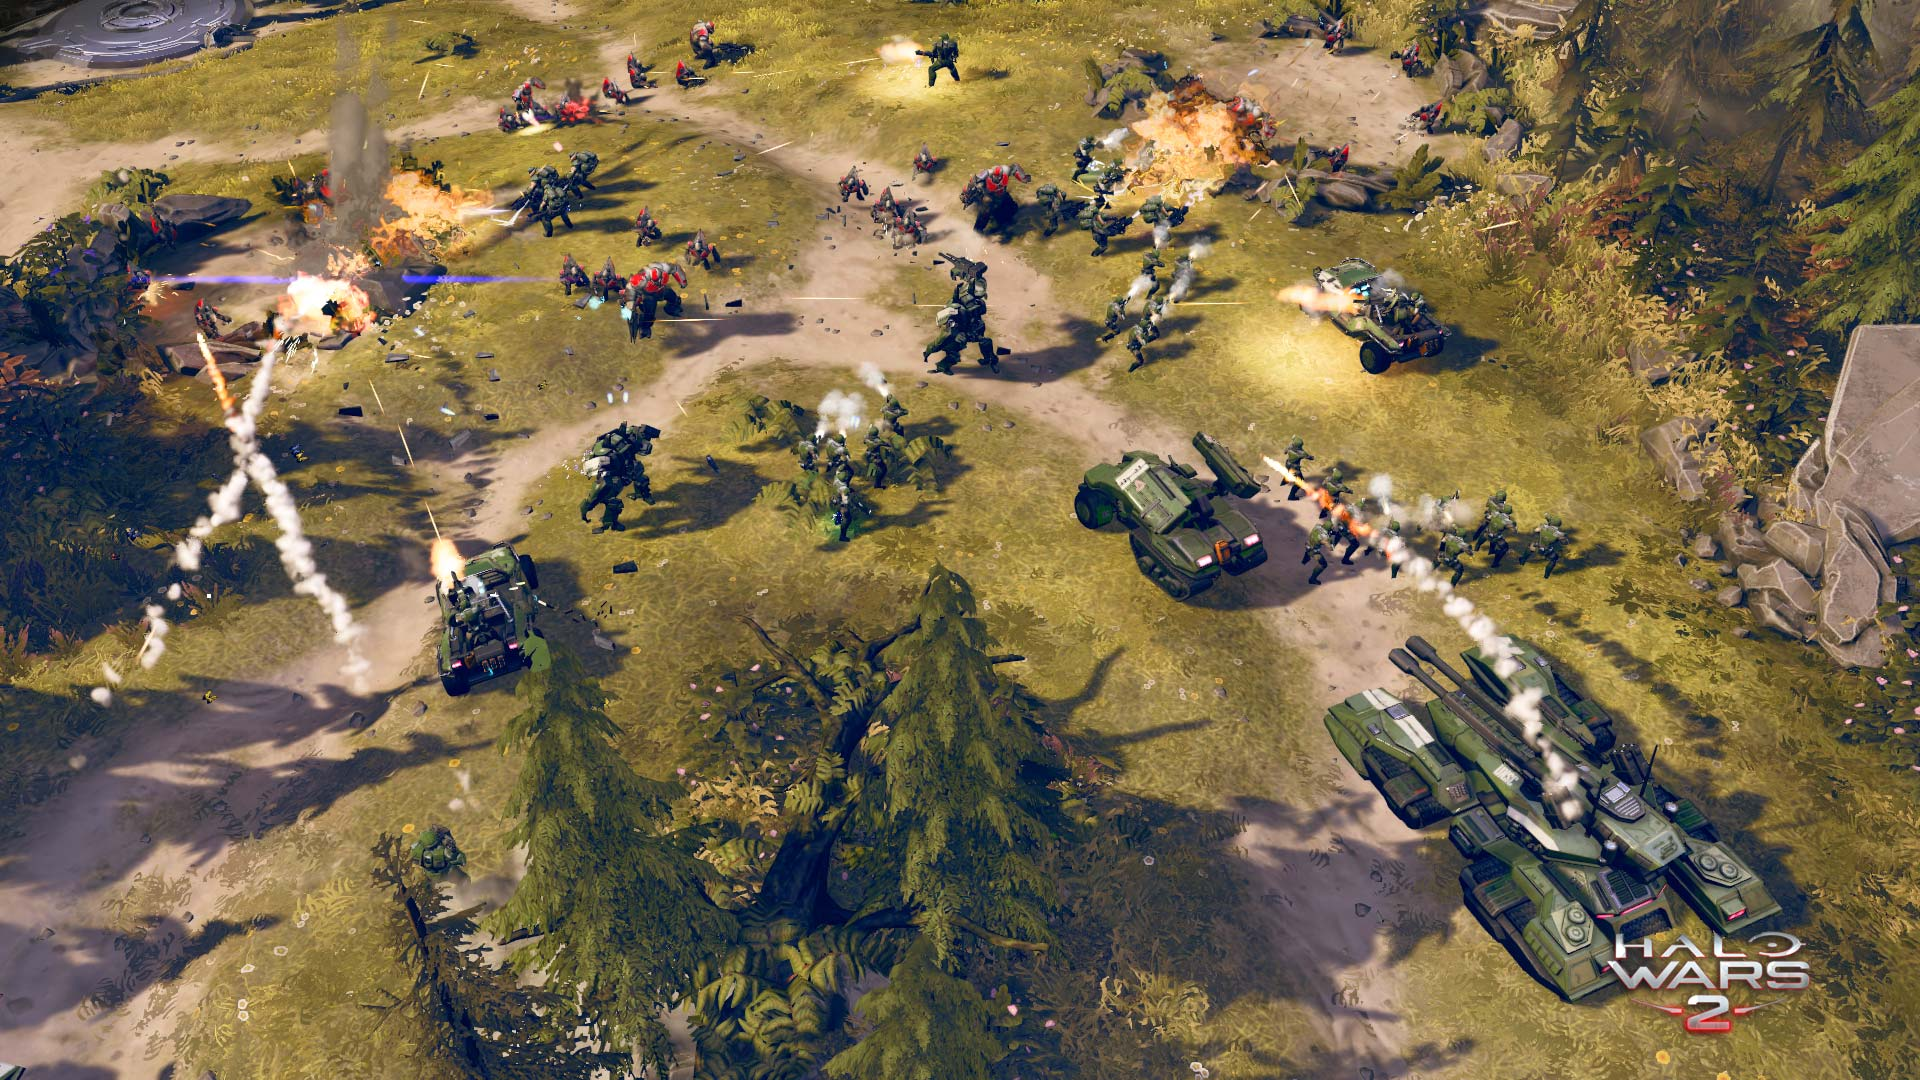 Halo Wars 2 Screenshot UNSC vs Banished